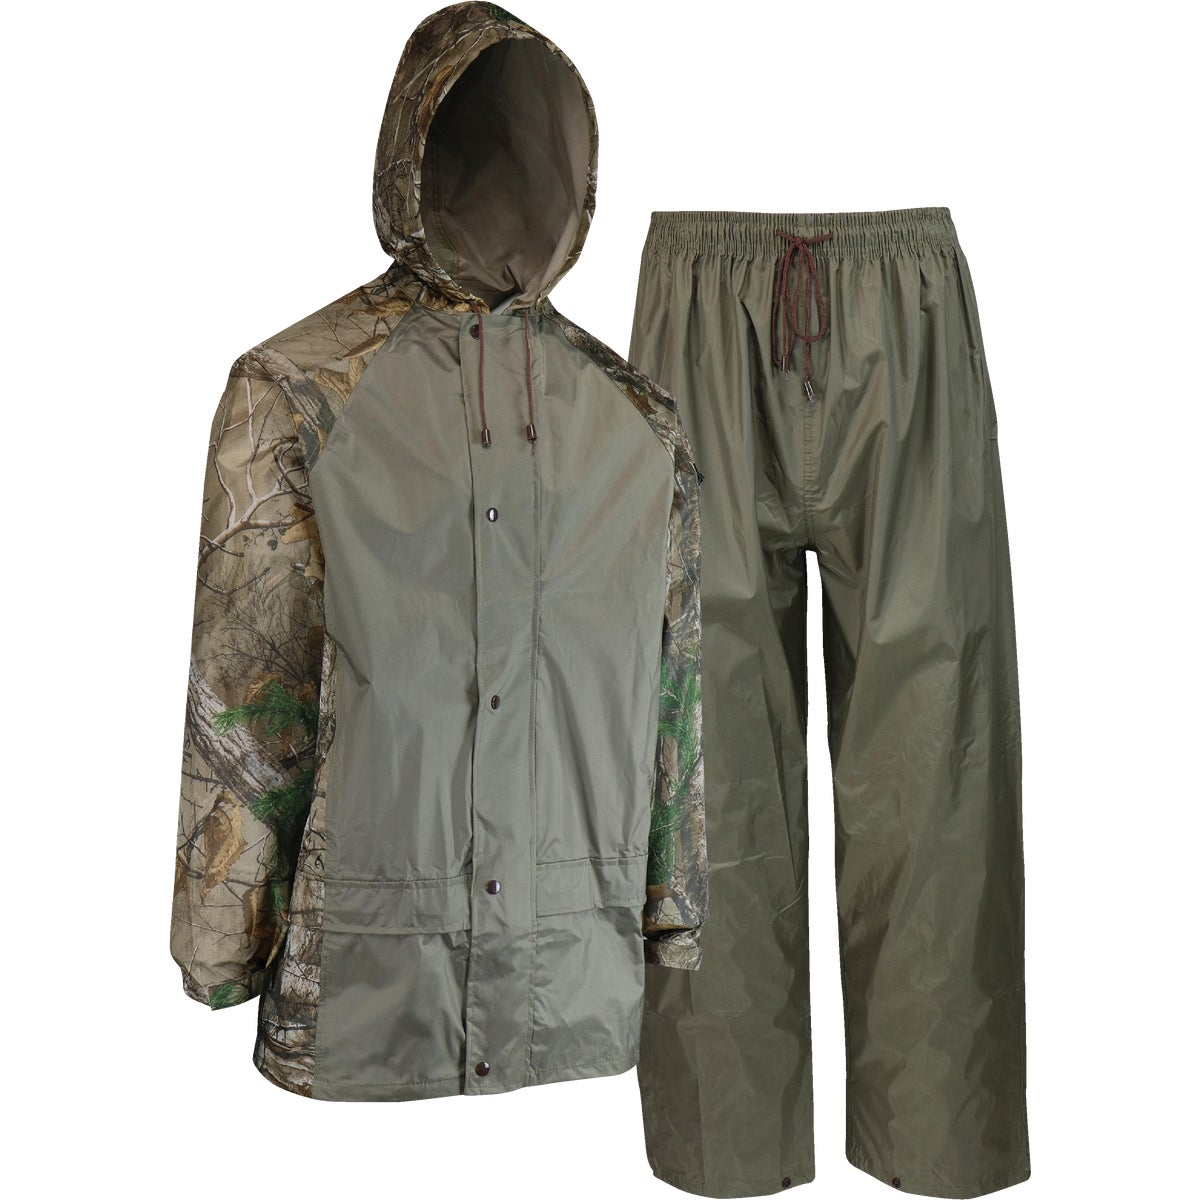 LRG 2PC CAMO RAIN SUIT - R180L by Custom Leathercraft